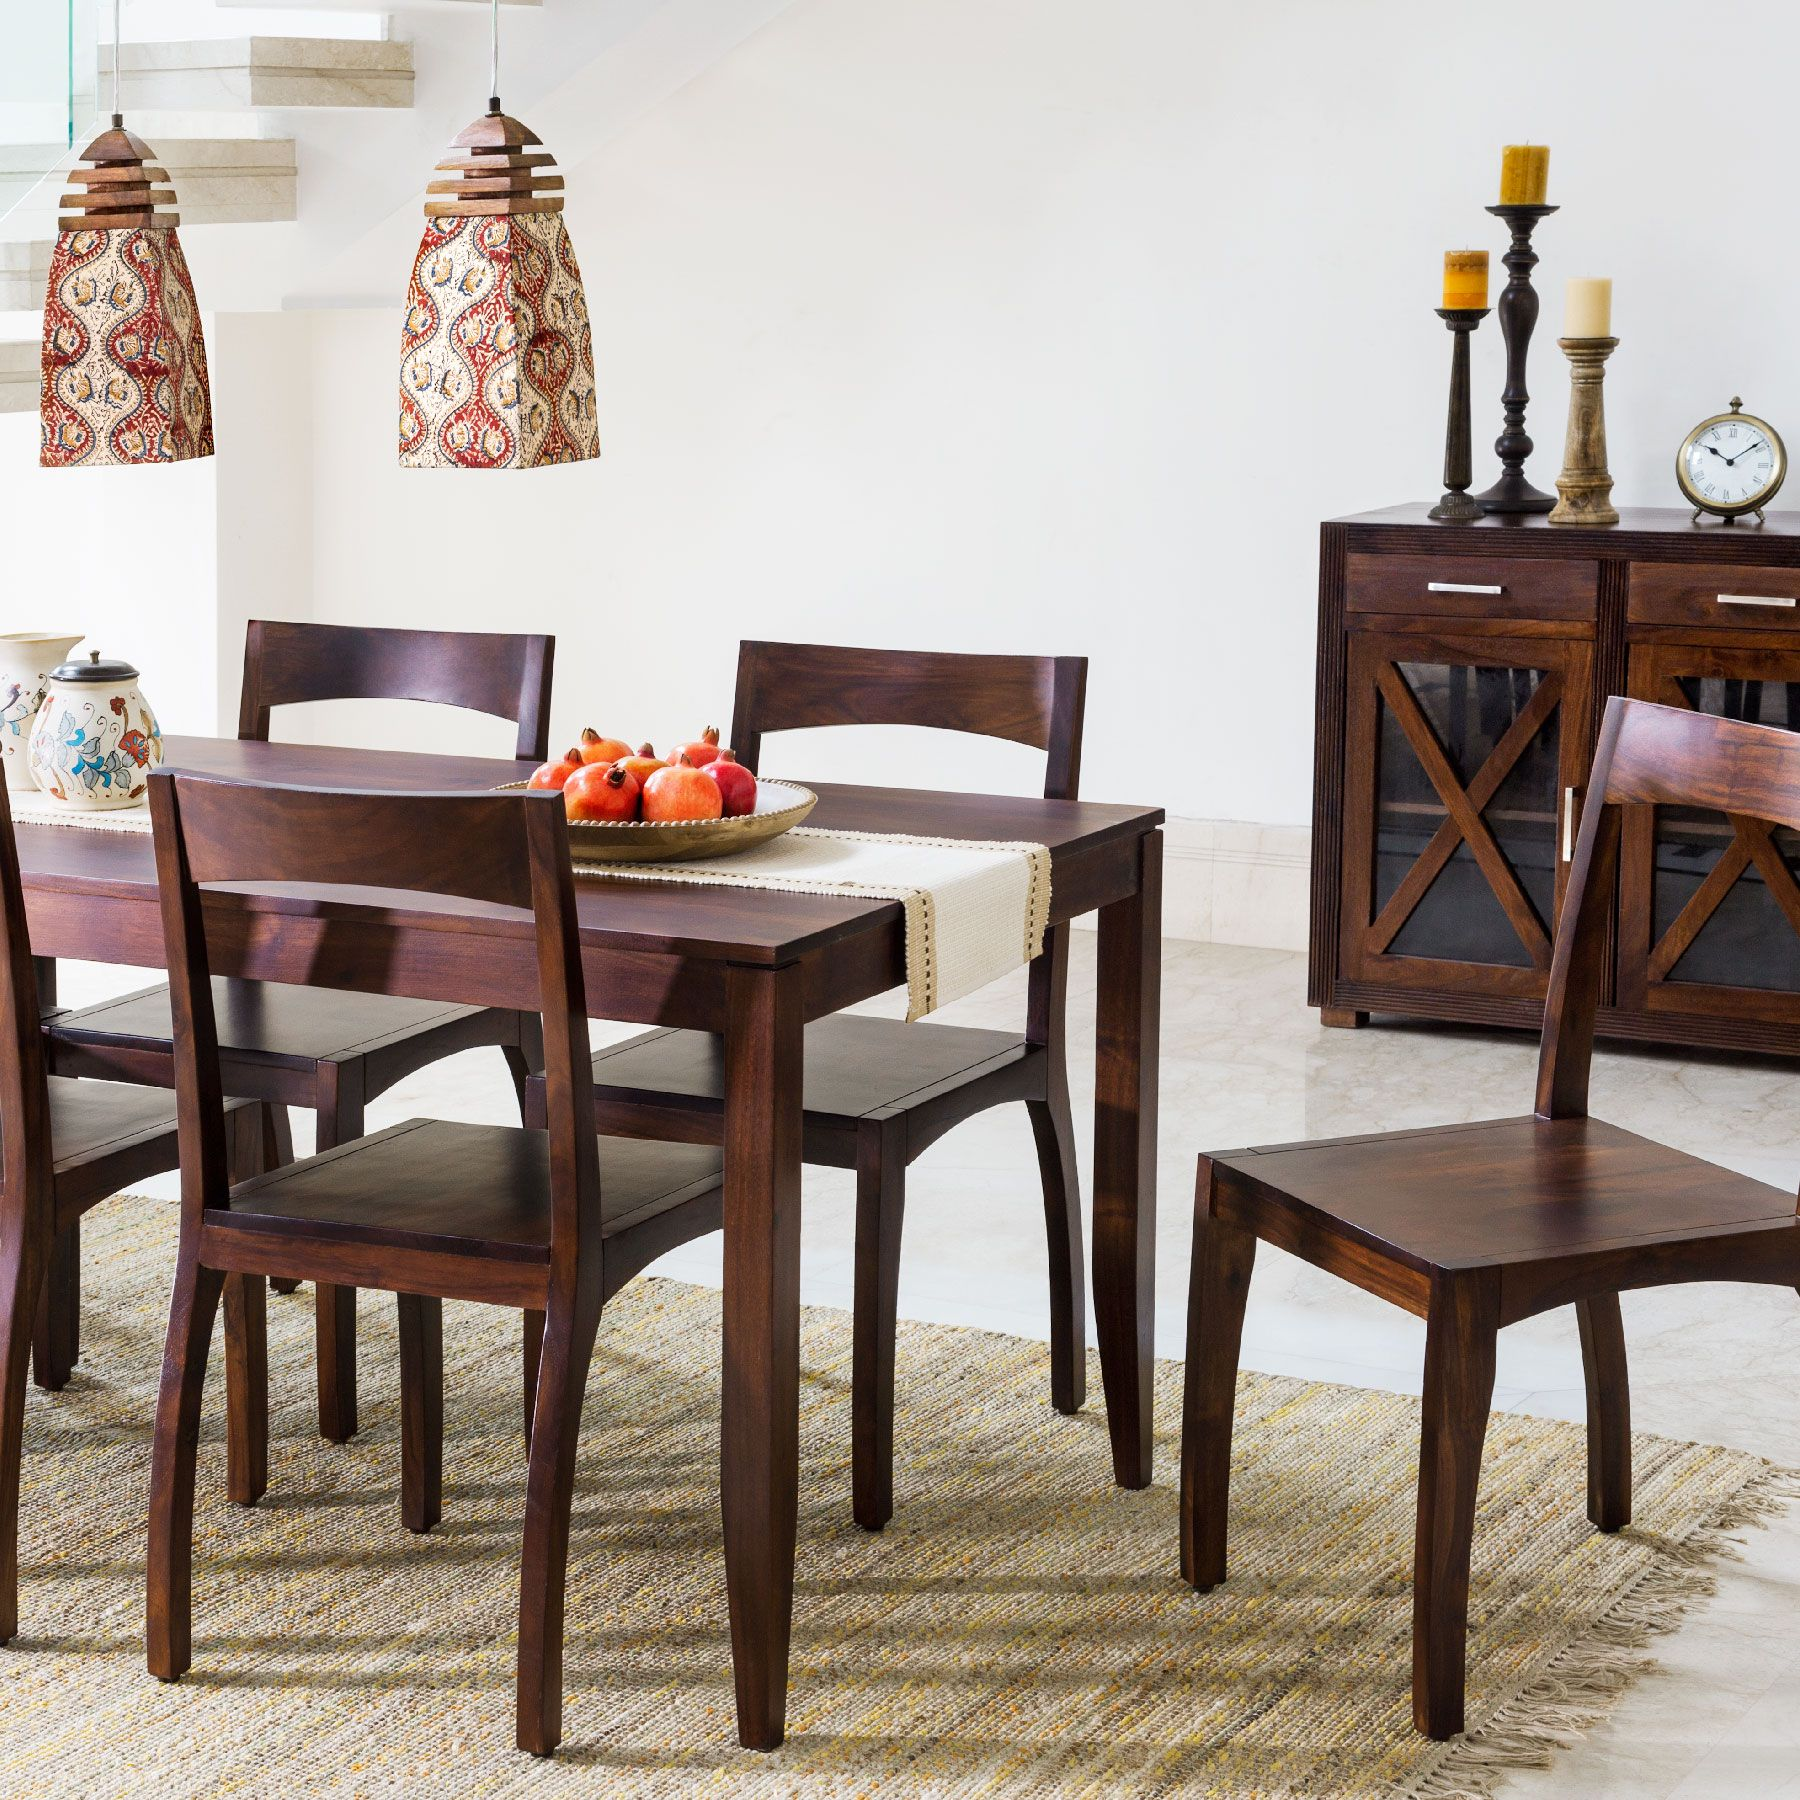 dining solid wood furniture table chairs dhurries hanging